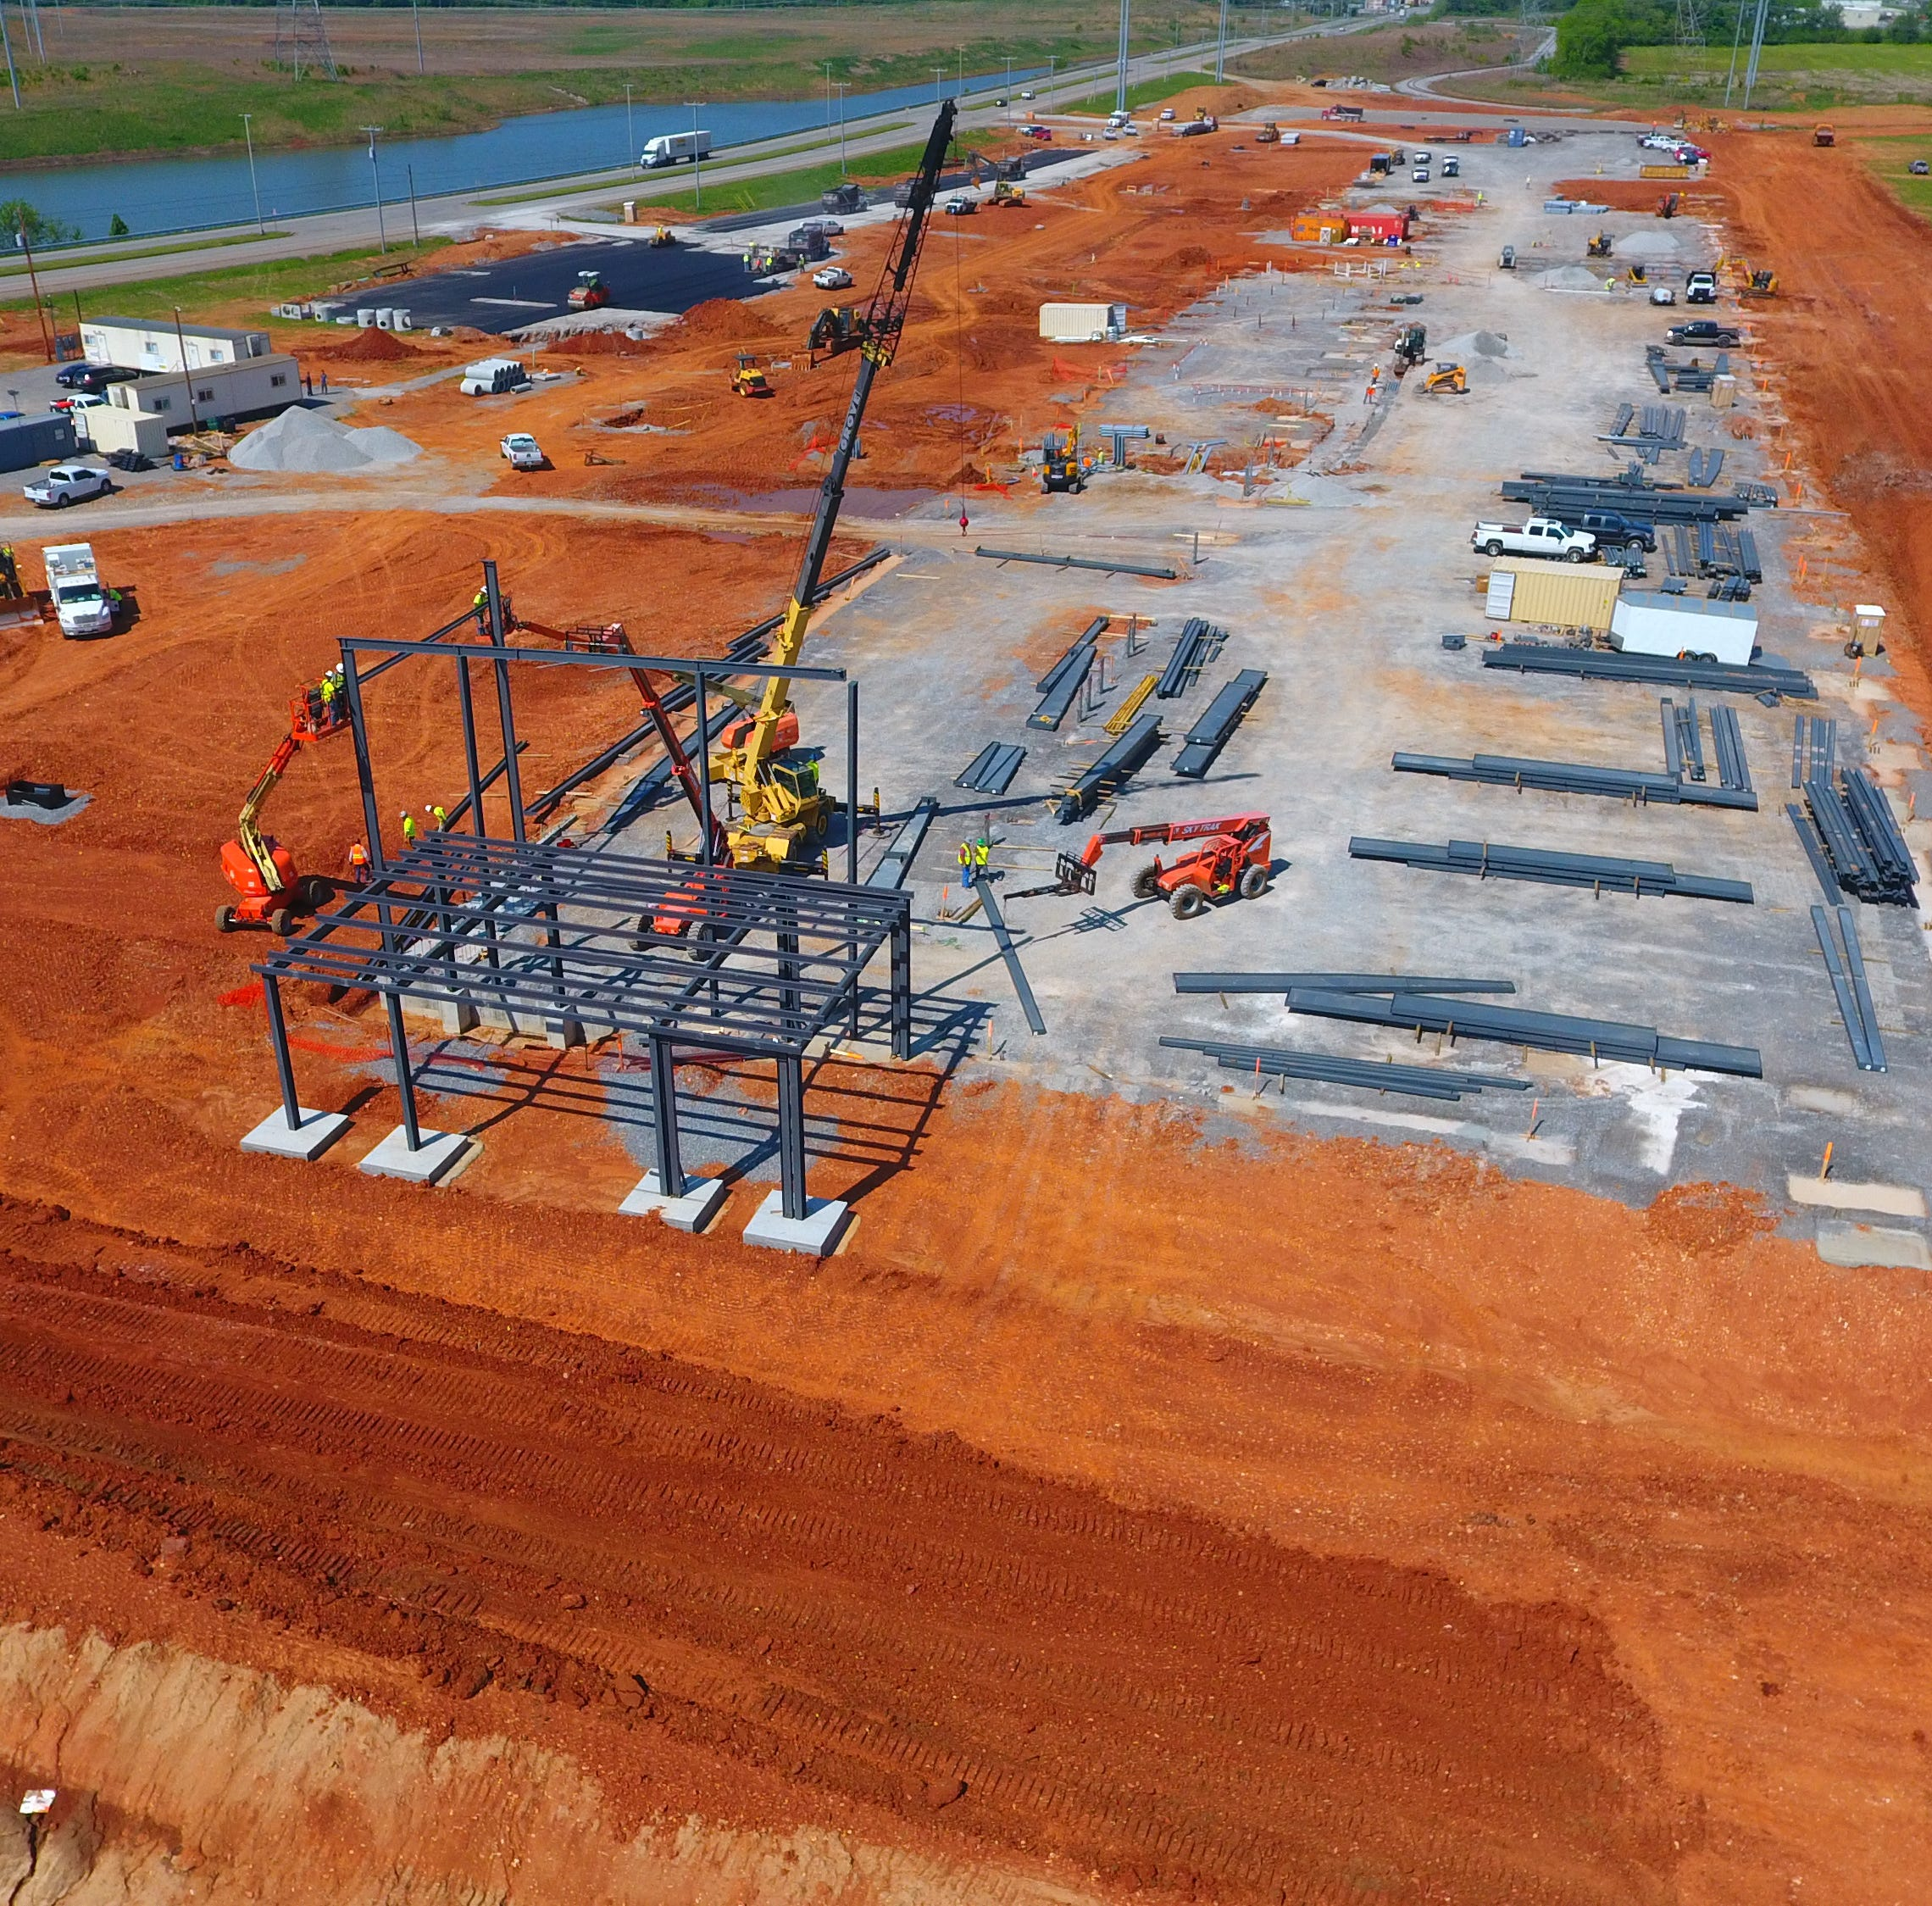 Construction progress visible at Clarksville's AtlasBX plant